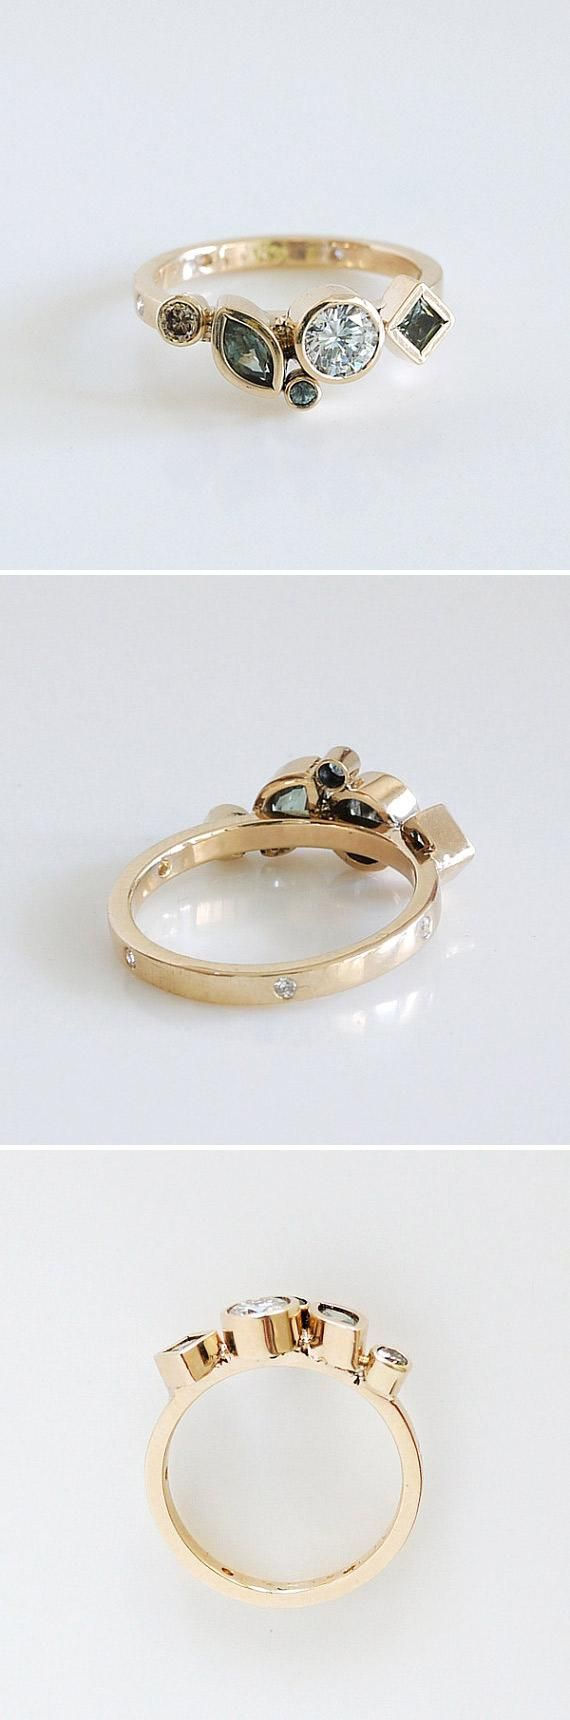 25 best ideas about Cluster ring on Pinterest  Cluster